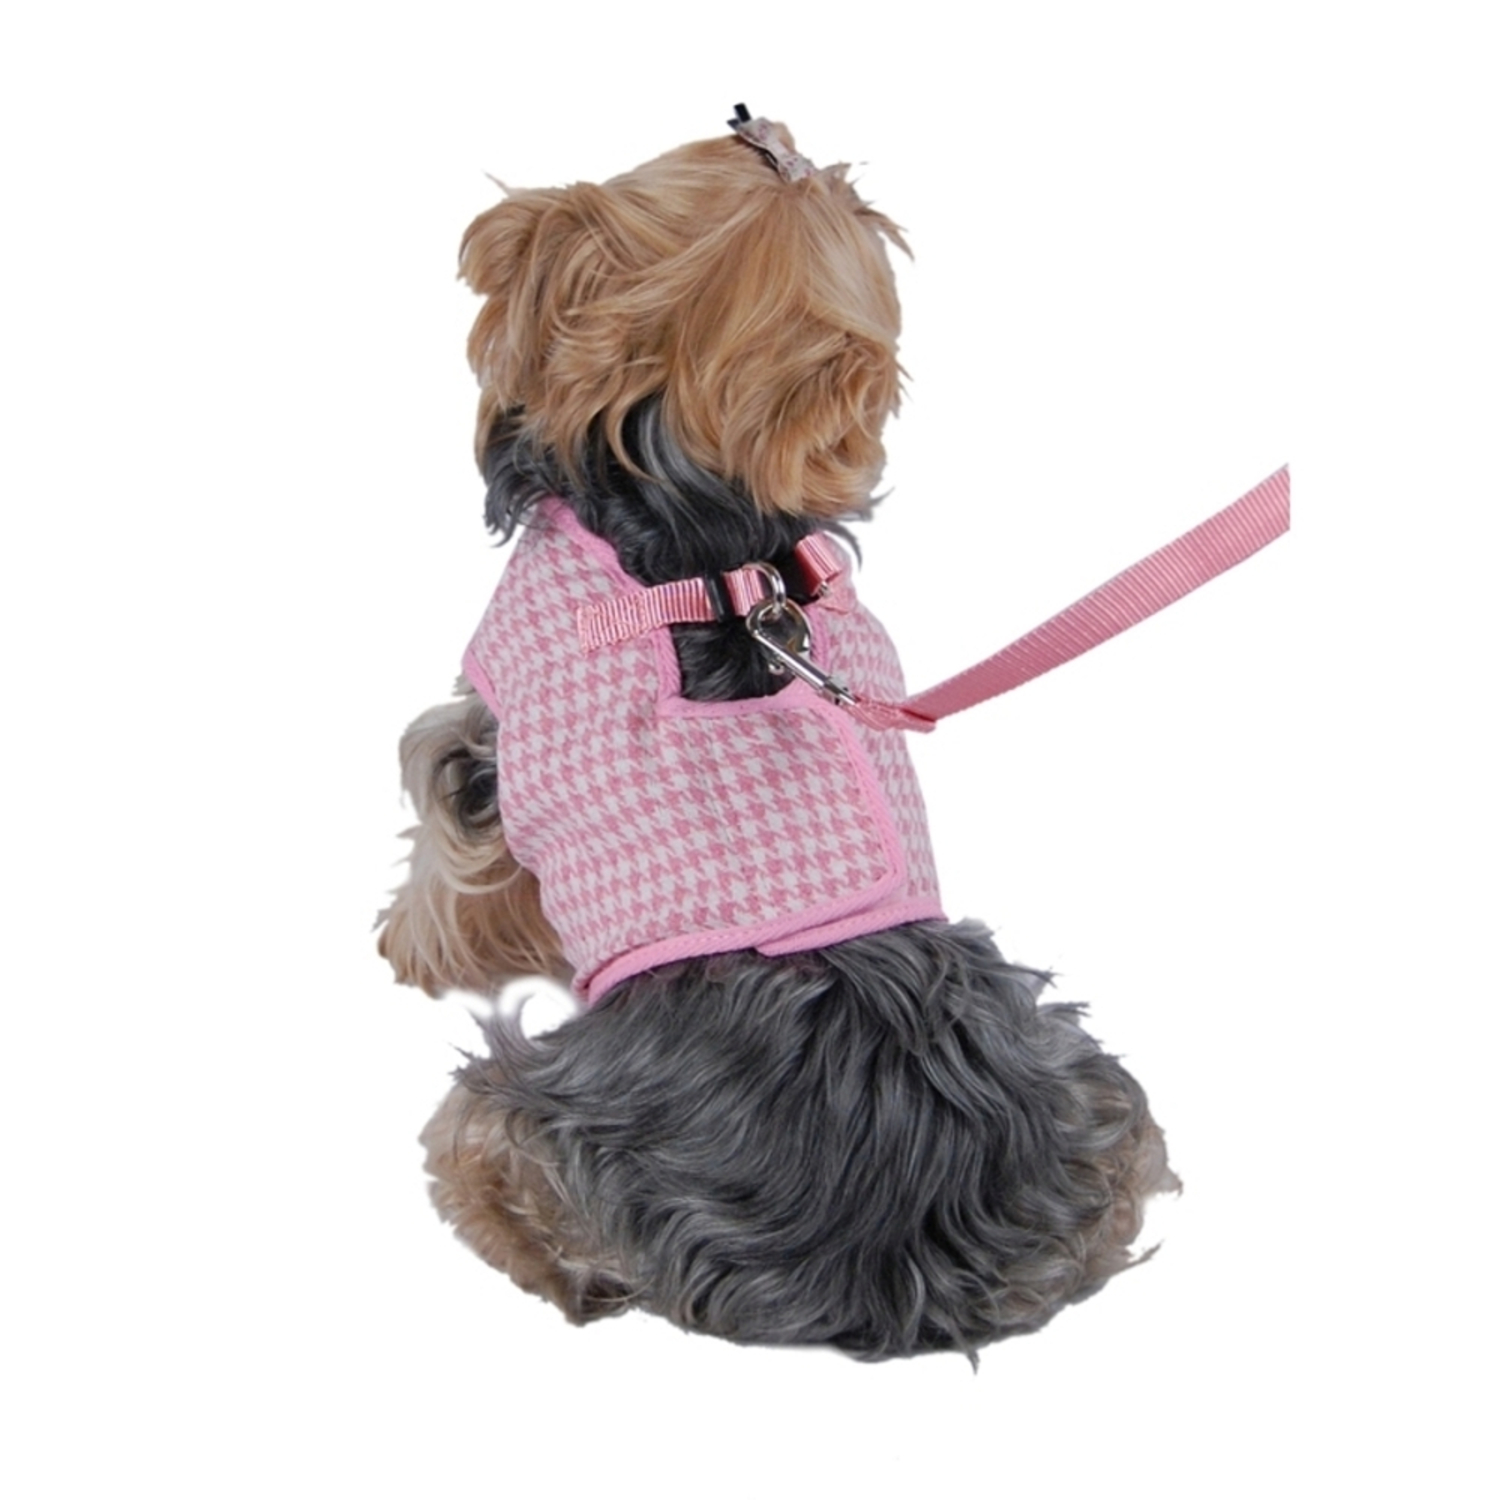 Pink White Hundstooth Jersey Harness W/ Leash For Dog - Large (Gift for Pet)